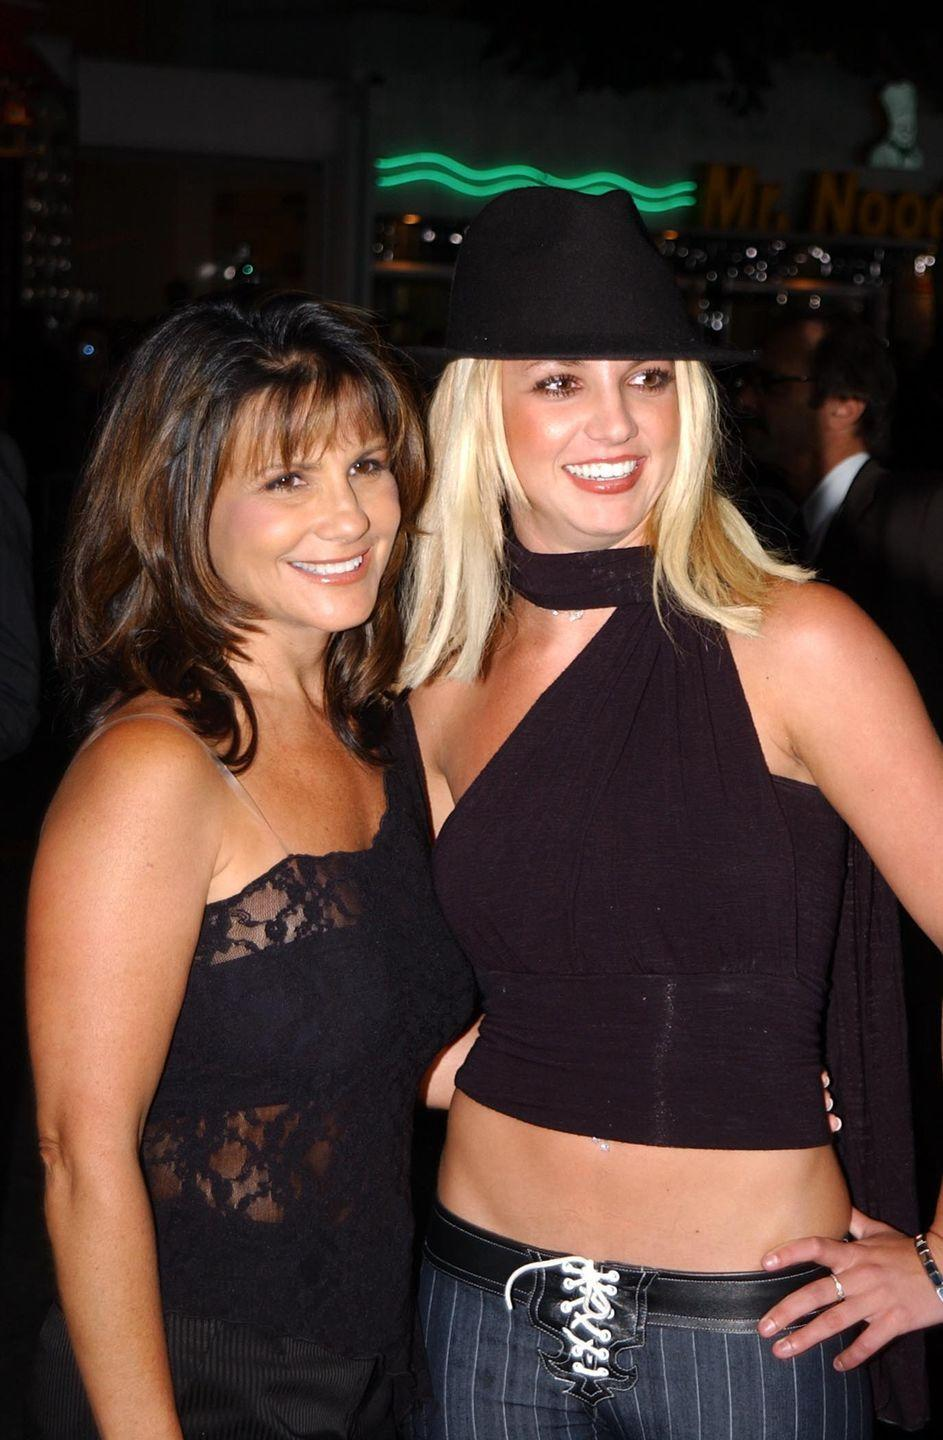 """<p>By February 2001, when she was 19, Britney Spears had already released two platinum albums, headlined international tours and been nominated for a Grammy award. Might as well also add published novelist to the list. </p><p><em>A Mother's Gift</em>, the second book co-written by Britney and her mom, Lynne, tells a slightly familiar story: a girl from small-town Mississippi who dreams of being a superstar singer and relies on the support of her mother when she's accepted to a prestigious school of music, according to <a href=""""https://www.publishersweekly.com/978-0-385-72953-6"""" rel=""""nofollow noopener"""" target=""""_blank"""" data-ylk=""""slk:Publishers Weekly"""" class=""""link rapid-noclick-resp"""">Publishers Weekly</a>. </p><p>However, Britney's writing didn't seem to be as much of a hit (me baby, one more time) with critics. """"A portion of the proceeds from sales will go to the Britney Spears Foundation, which operates a performing arts camp for disadvantaged 11 to 14 year olds, but I suggest a less painful way of supporting the cause would be to send the money direct–I'd pay them to take this book off my desk,"""" wrote a reviewer for <a href=""""https://www.rte.ie/entertainment/book-reviews/2001/0614/445375-mothersgift/"""" rel=""""nofollow noopener"""" target=""""_blank"""" data-ylk=""""slk:RTE"""" class=""""link rapid-noclick-resp"""">RTE</a>. <br><br></p><p><a class=""""link rapid-noclick-resp"""" href=""""https://www.amazon.com/Mothers-Gift-Britney-Spears/dp/0440237998?tag=syn-yahoo-20&ascsubtag=%5Bartid%7C2140.g.33987725%5Bsrc%7Cyahoo-us"""" rel=""""nofollow noopener"""" target=""""_blank"""" data-ylk=""""slk:Buy the Book"""">Buy the Book</a></p>"""